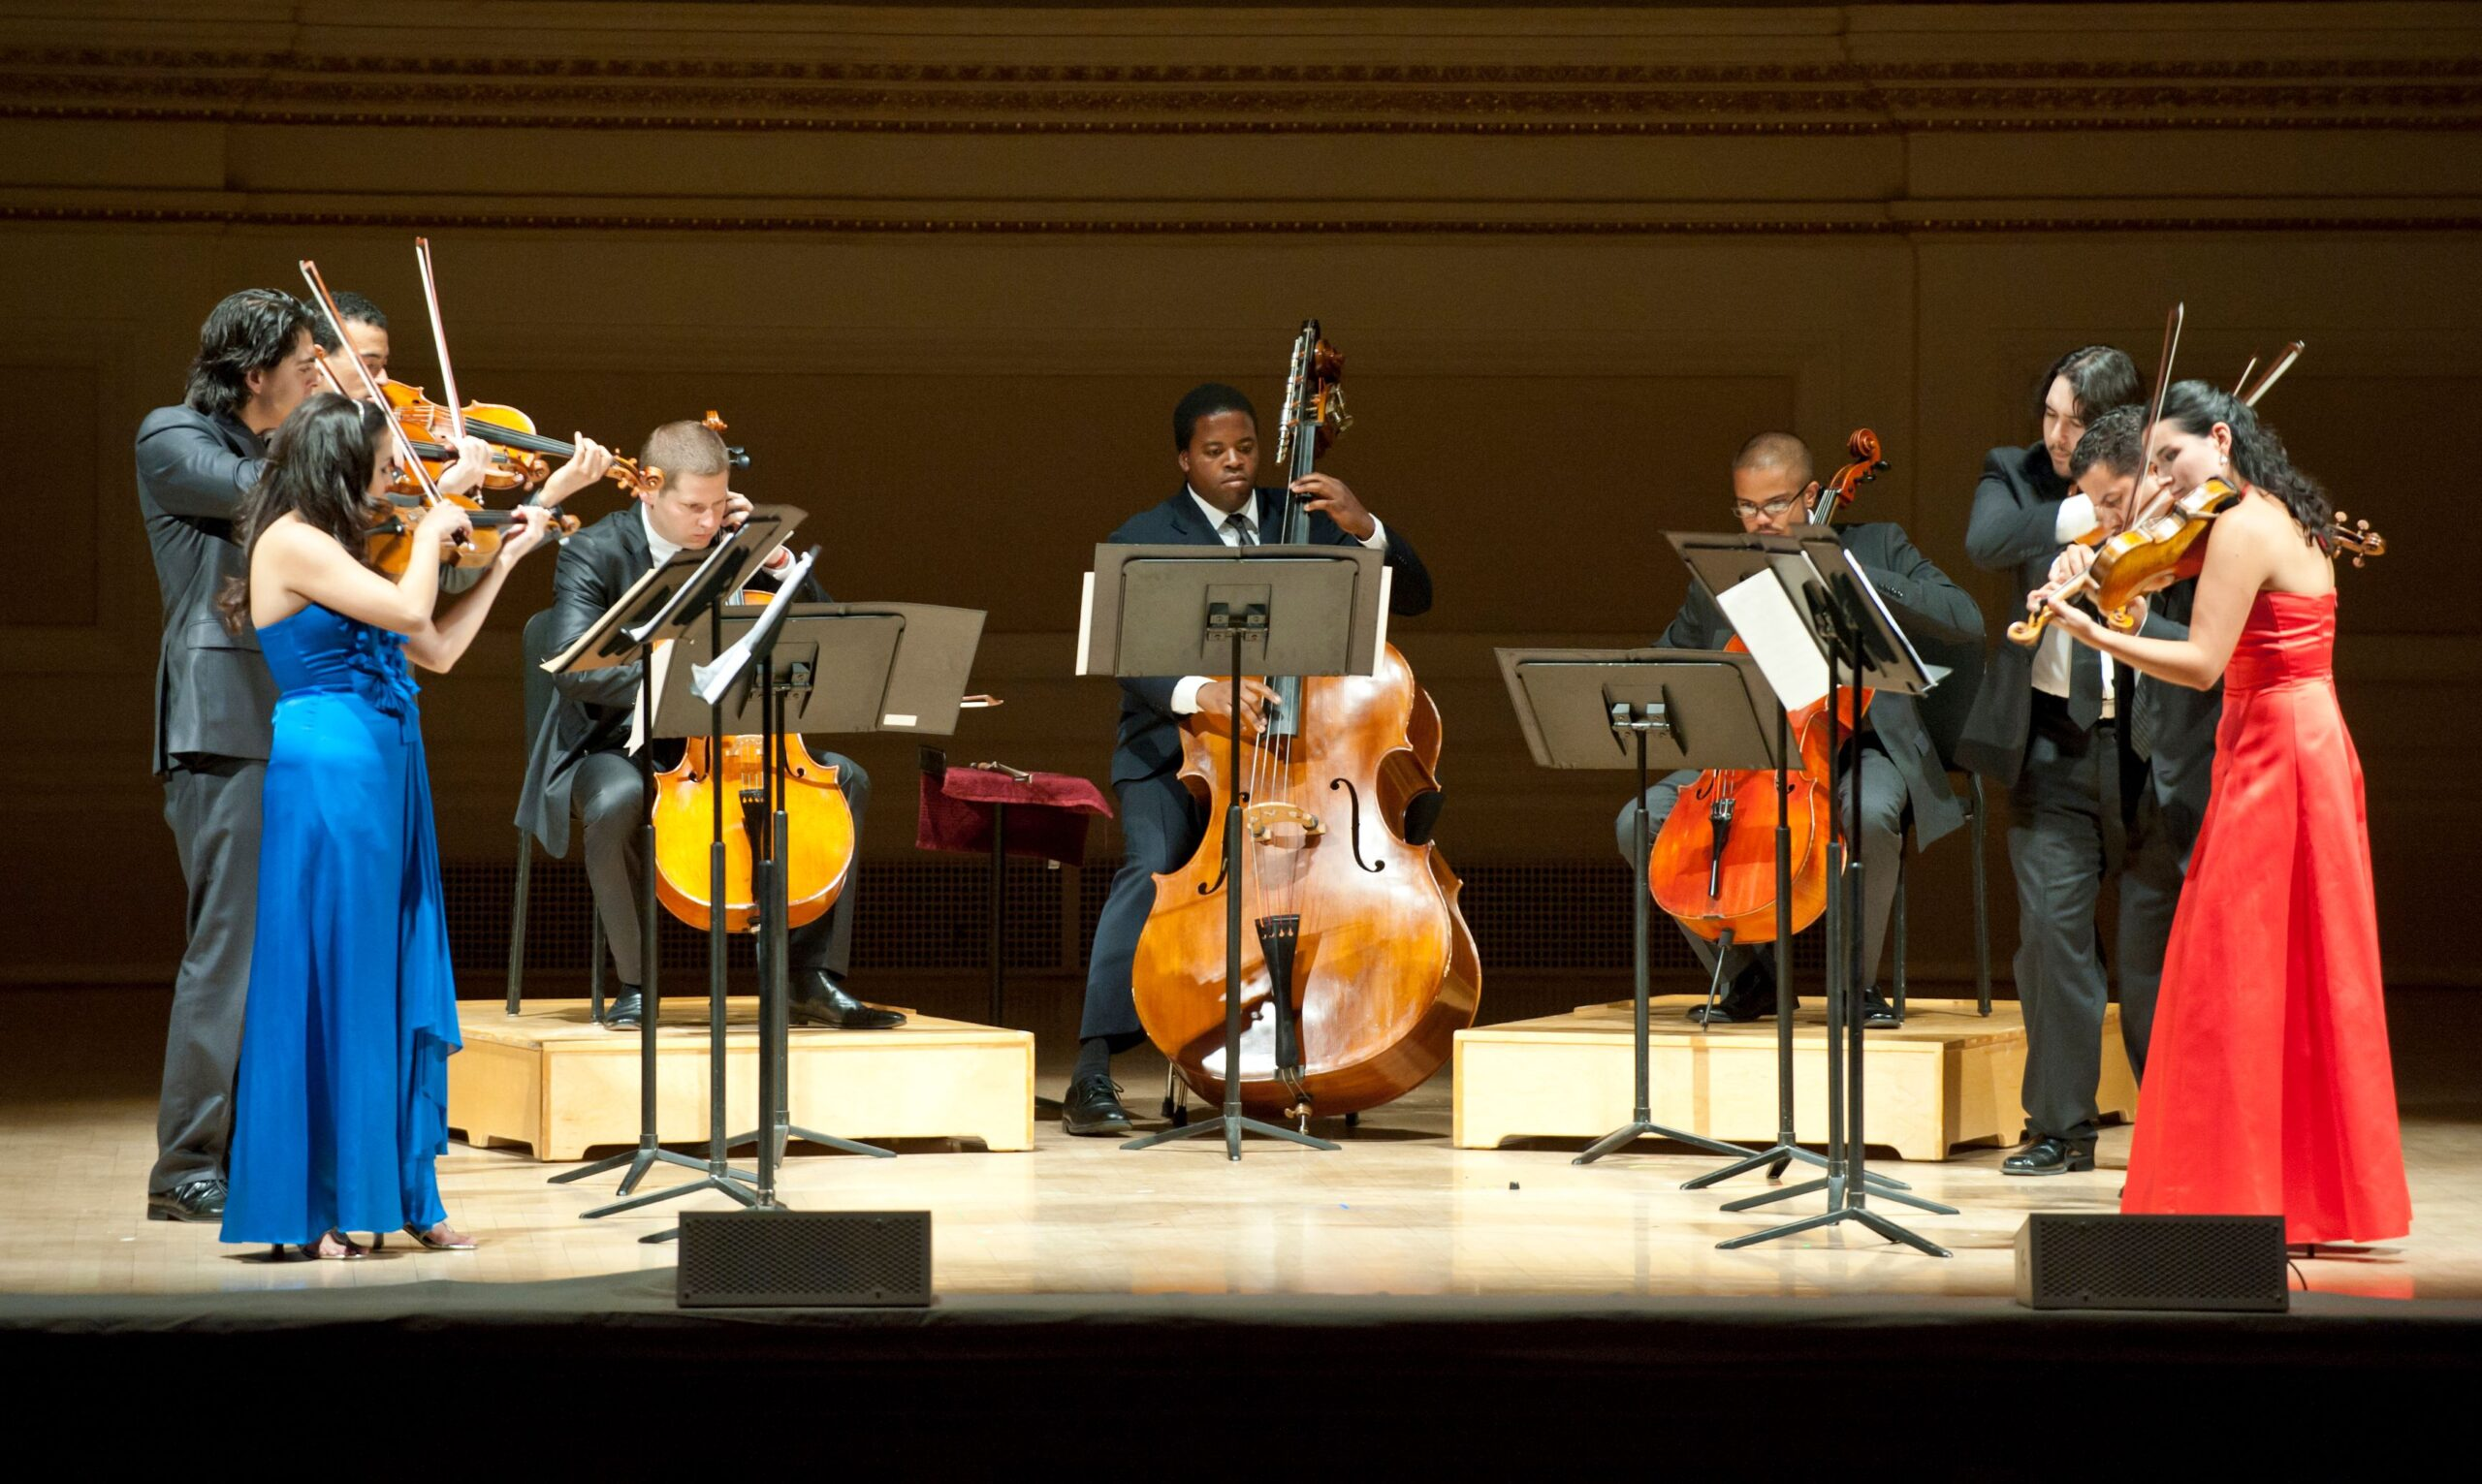 Members of the Sphinx Virtuosi chamber ensemble perform at Carnegie Hall.